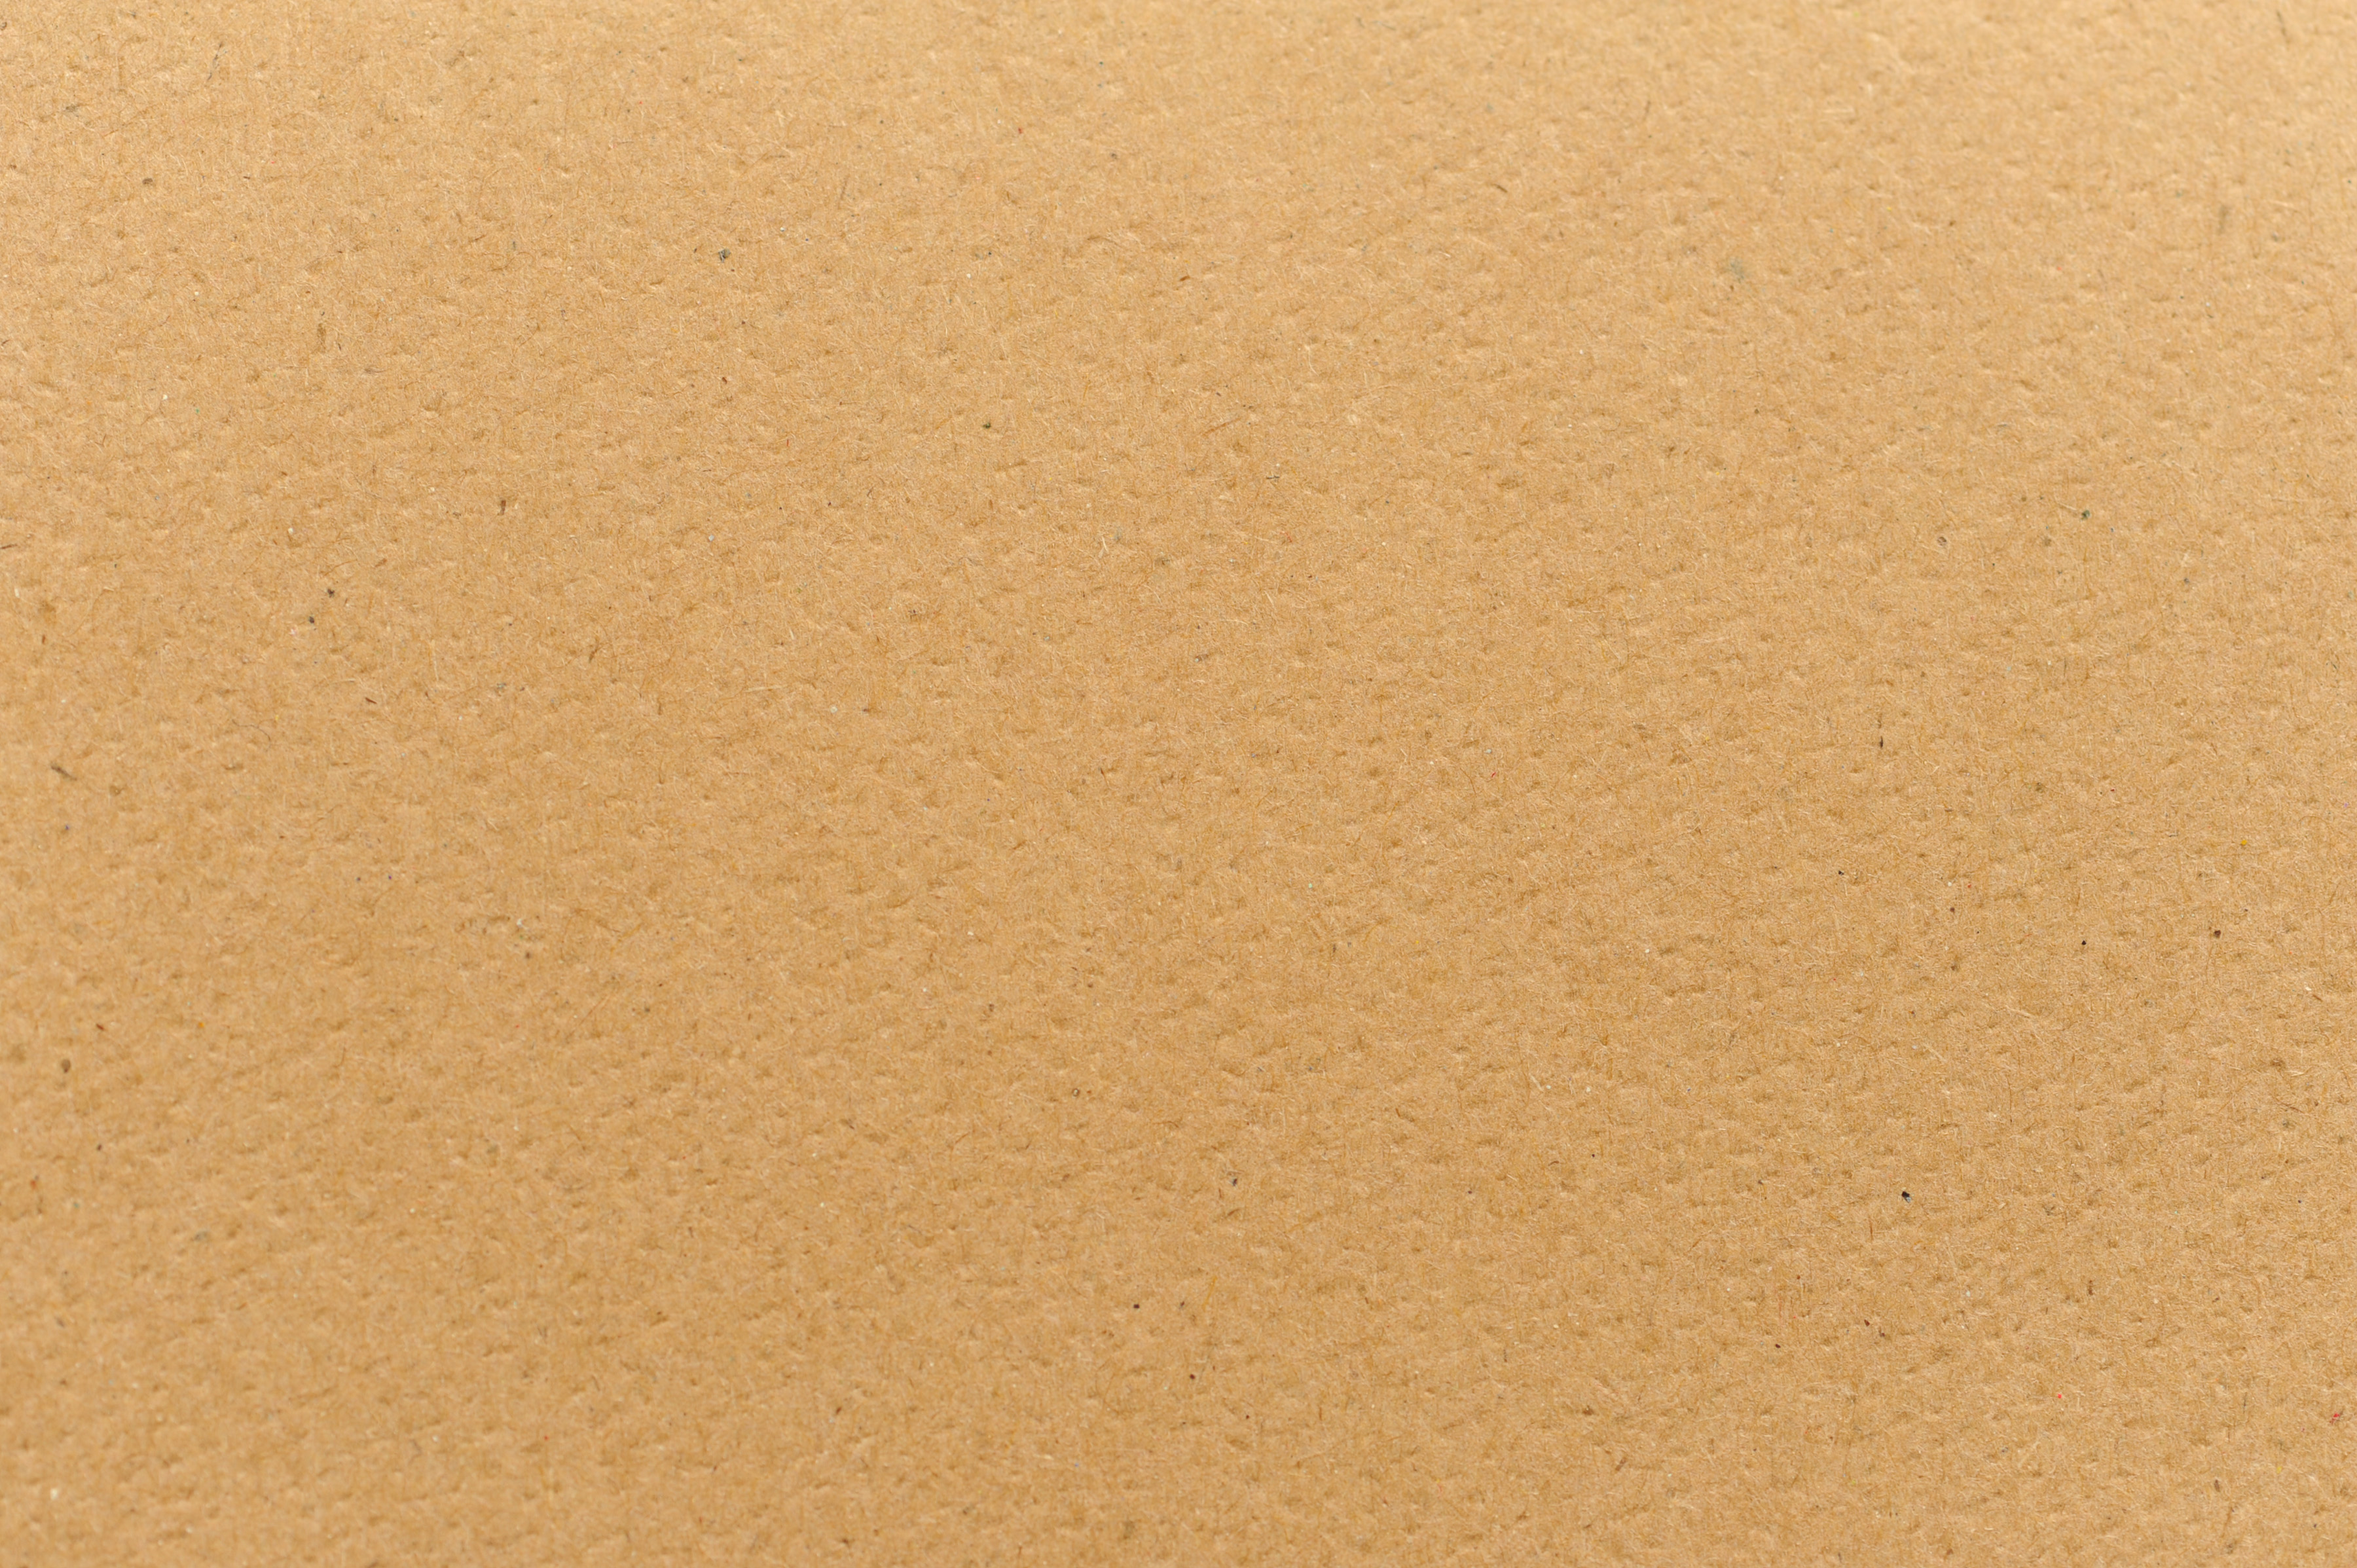 Full frame background texture of plain flat brown cardboard with copy space